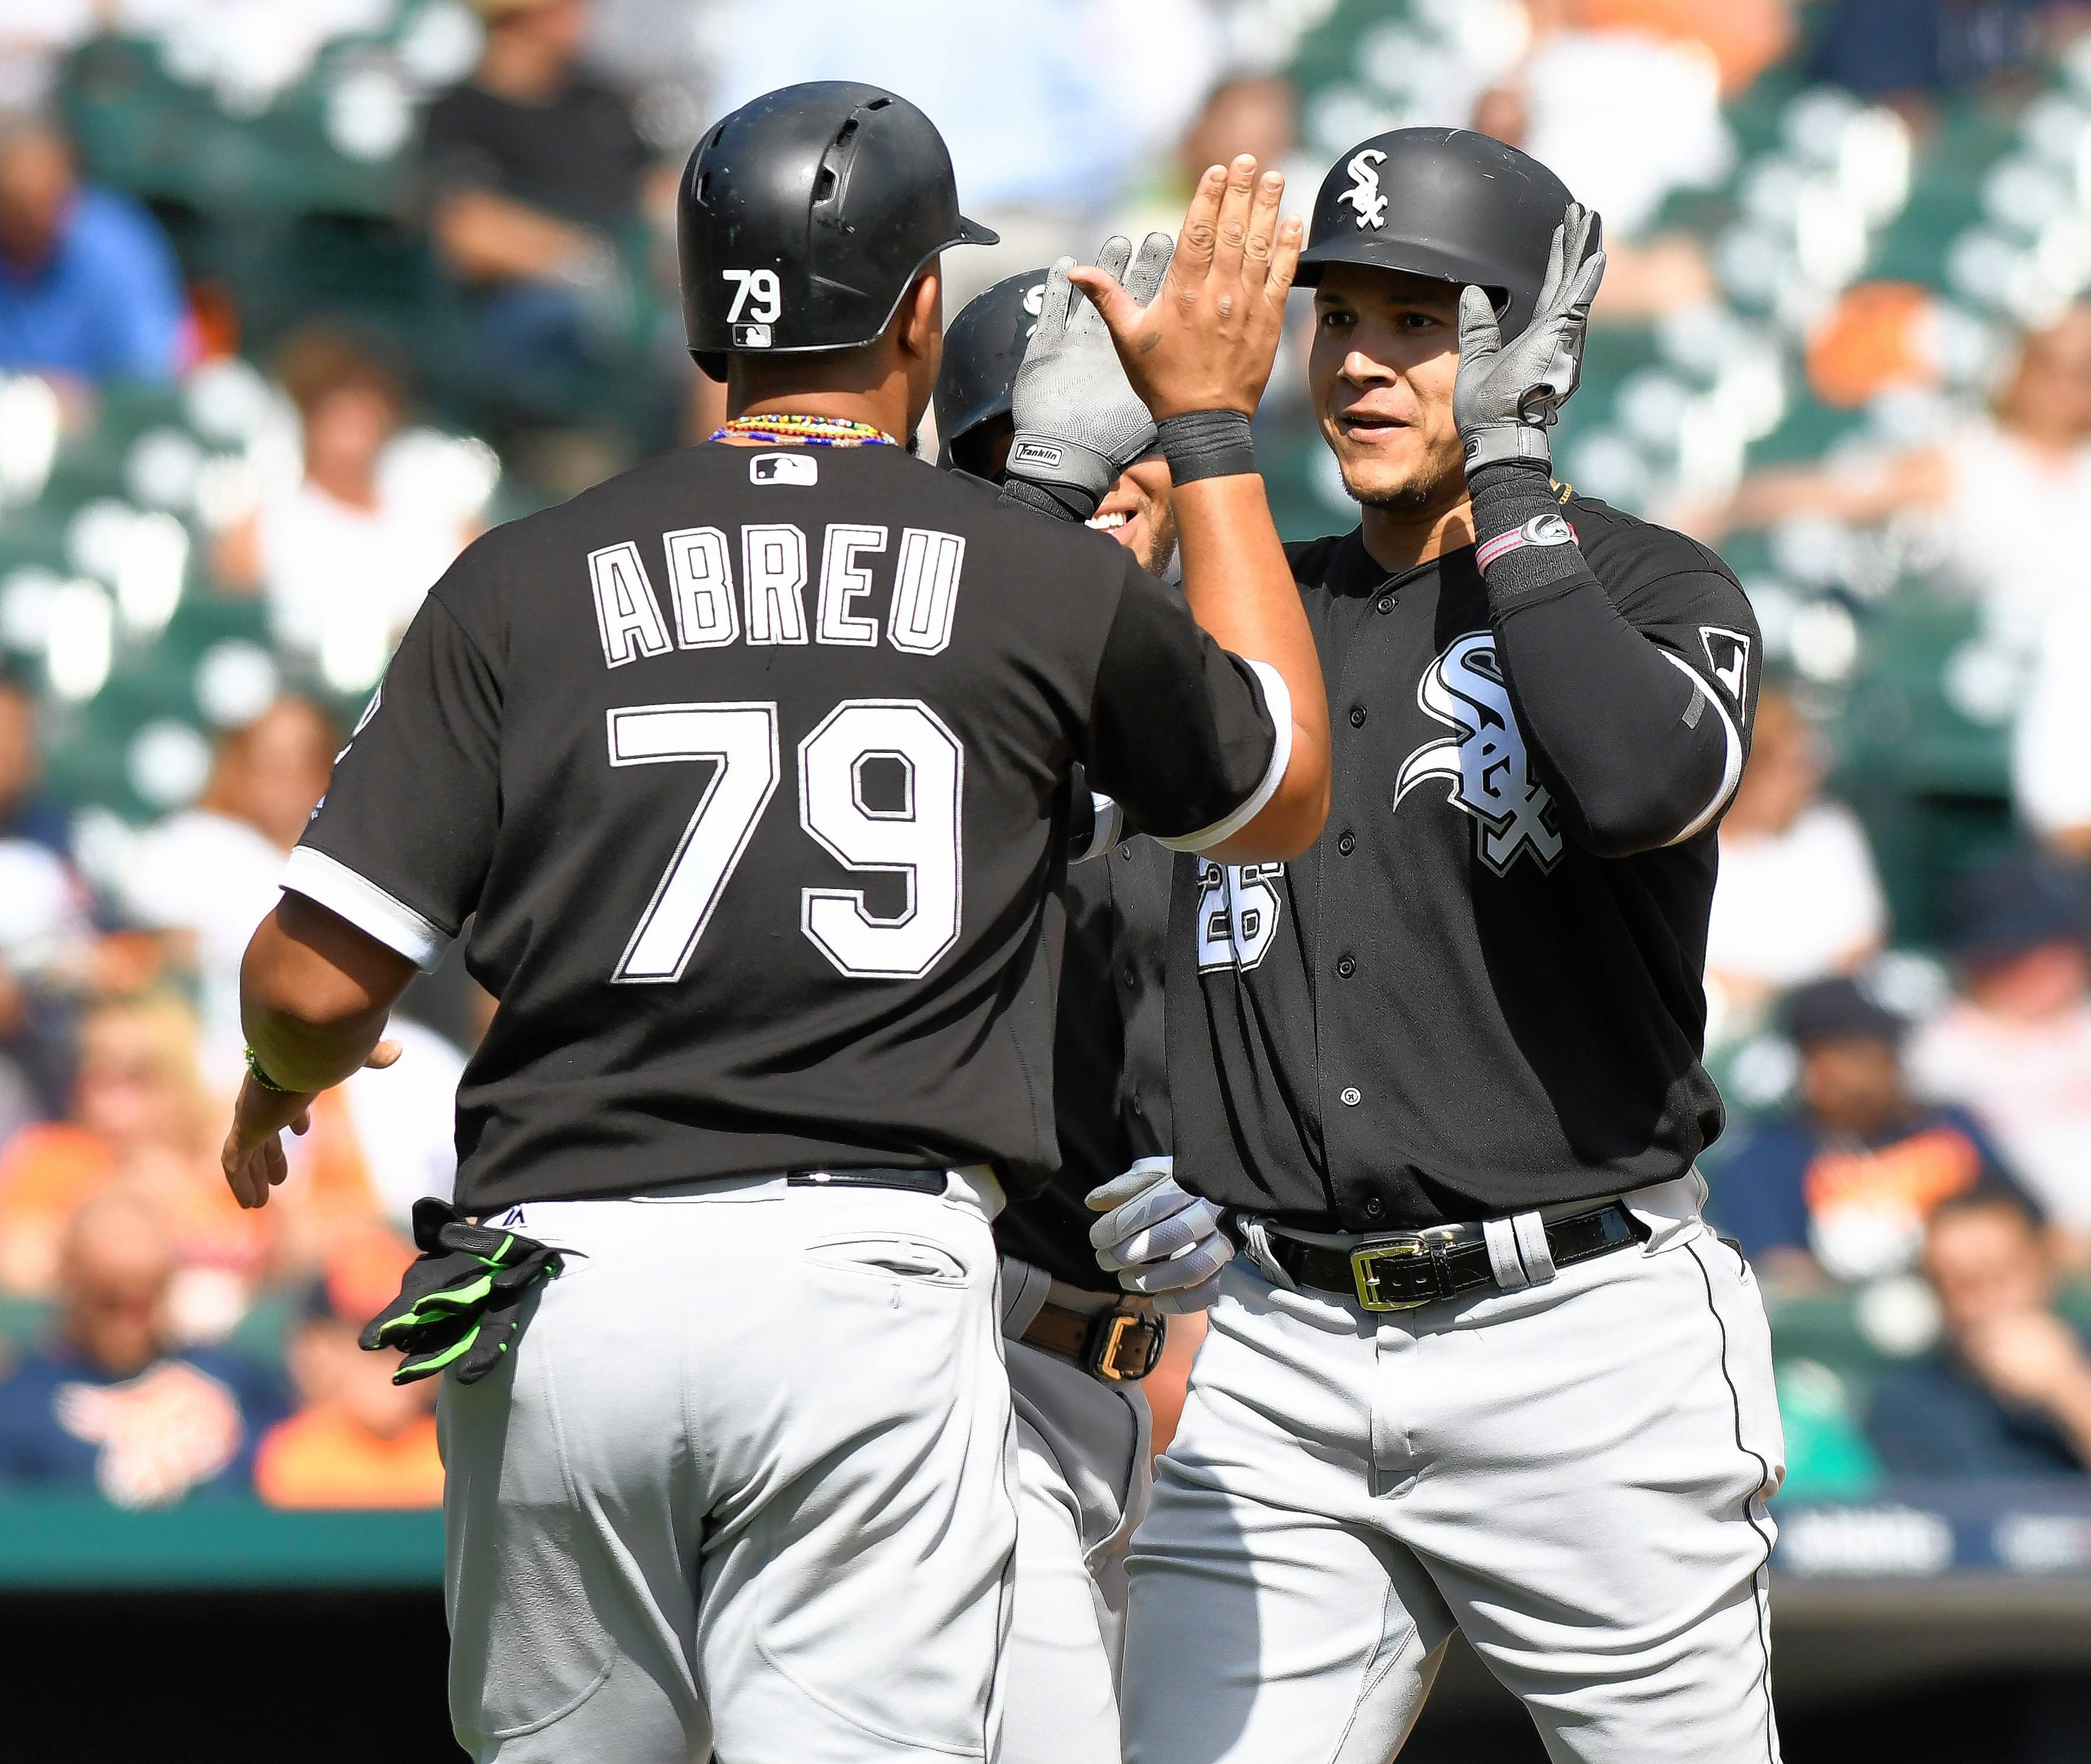 Chicago White Sox right fielder Avisail Garcia (26) is congratulated by first baseman Jose Abreu (79) after hitting a three-run home run against the Detroit Tigers during the sixth inning of a baseball game, Thursday, Sept. 14, 2017, in Detroit. The White Sox defeated the Tigers 17-7.